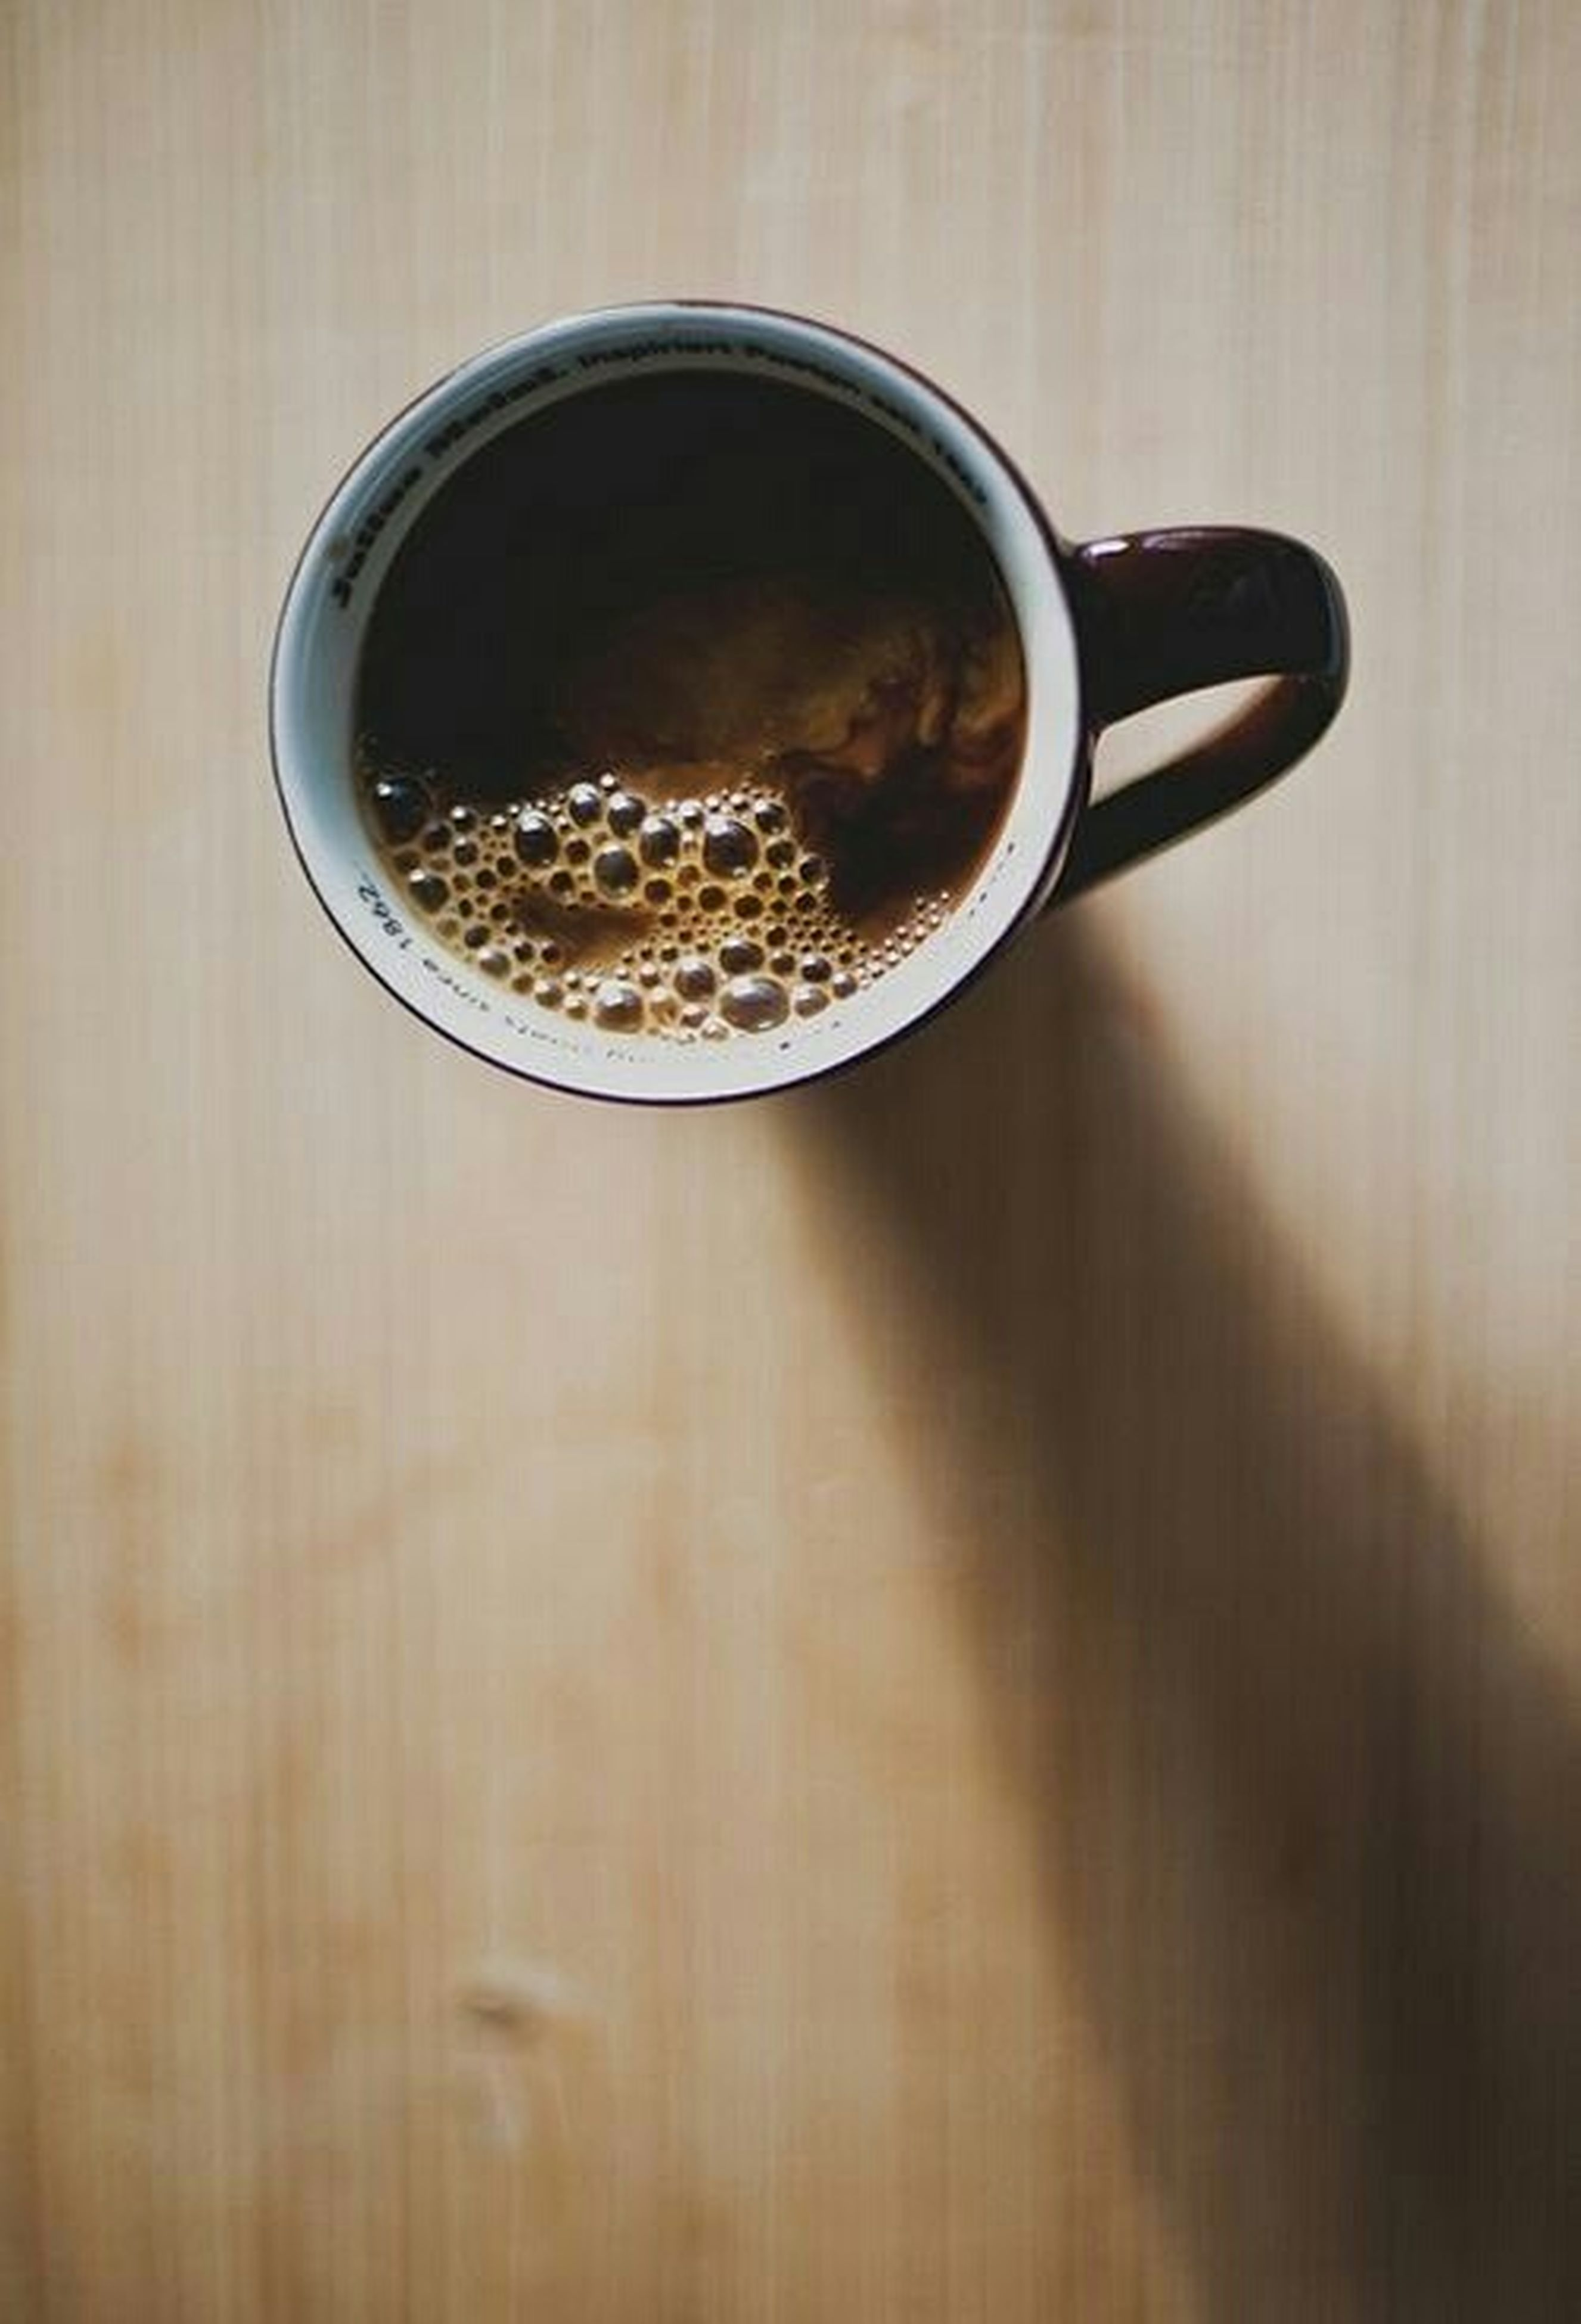 indoors, drink, refreshment, close-up, food and drink, table, coffee cup, freshness, still life, reflection, no people, directly above, cup, circle, wood - material, coffee - drink, selective focus, coffee, glass - material, glass